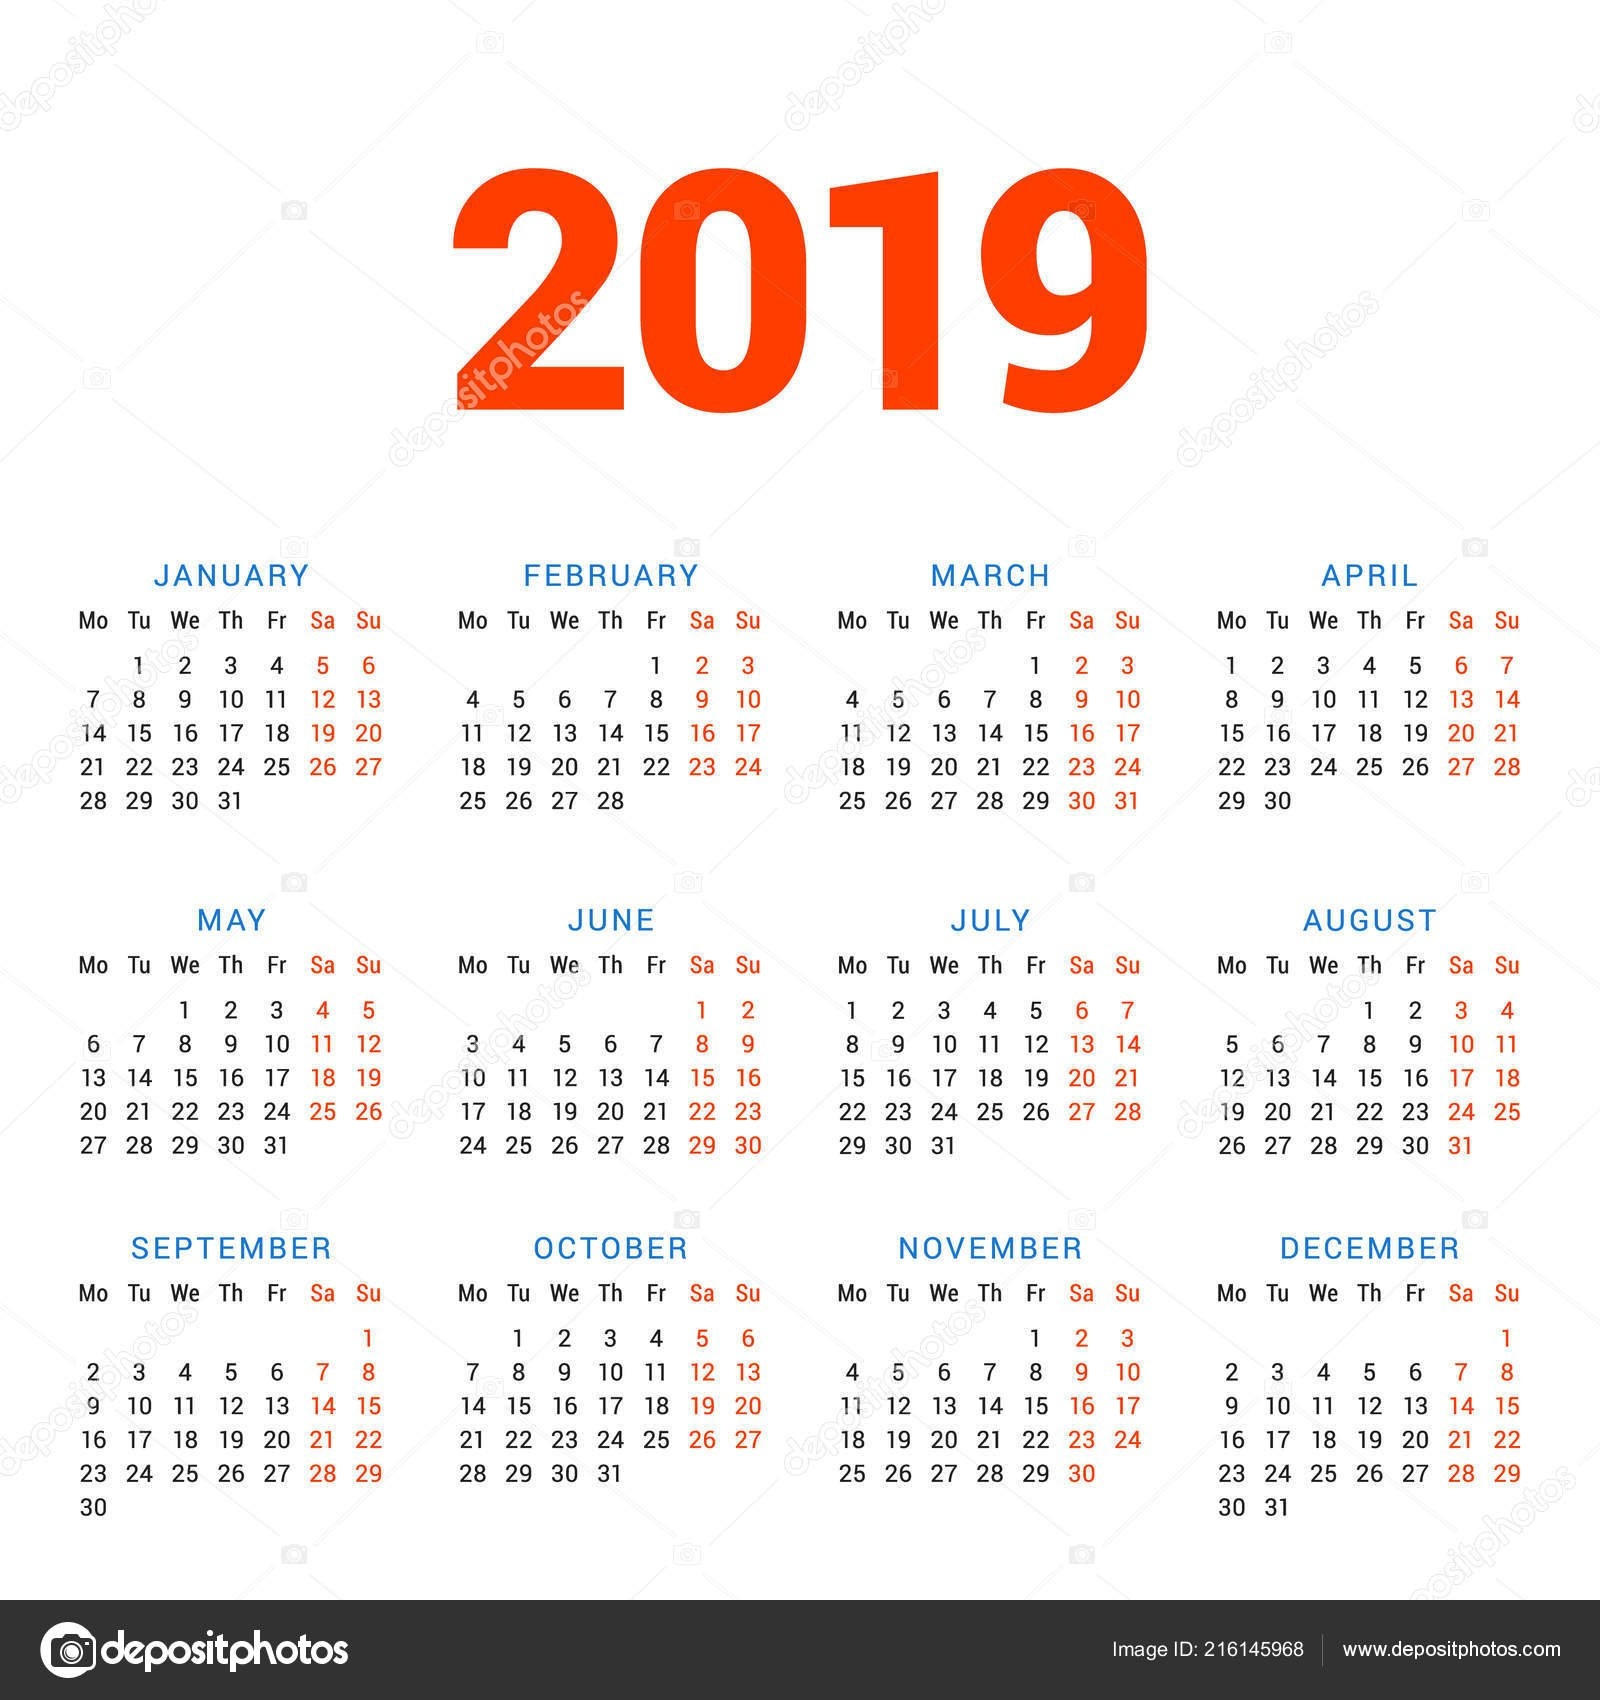 Calendar 2019 Year White Background Week Starts Monday Columns Rows 4 Weekly Pay Calendar 2019